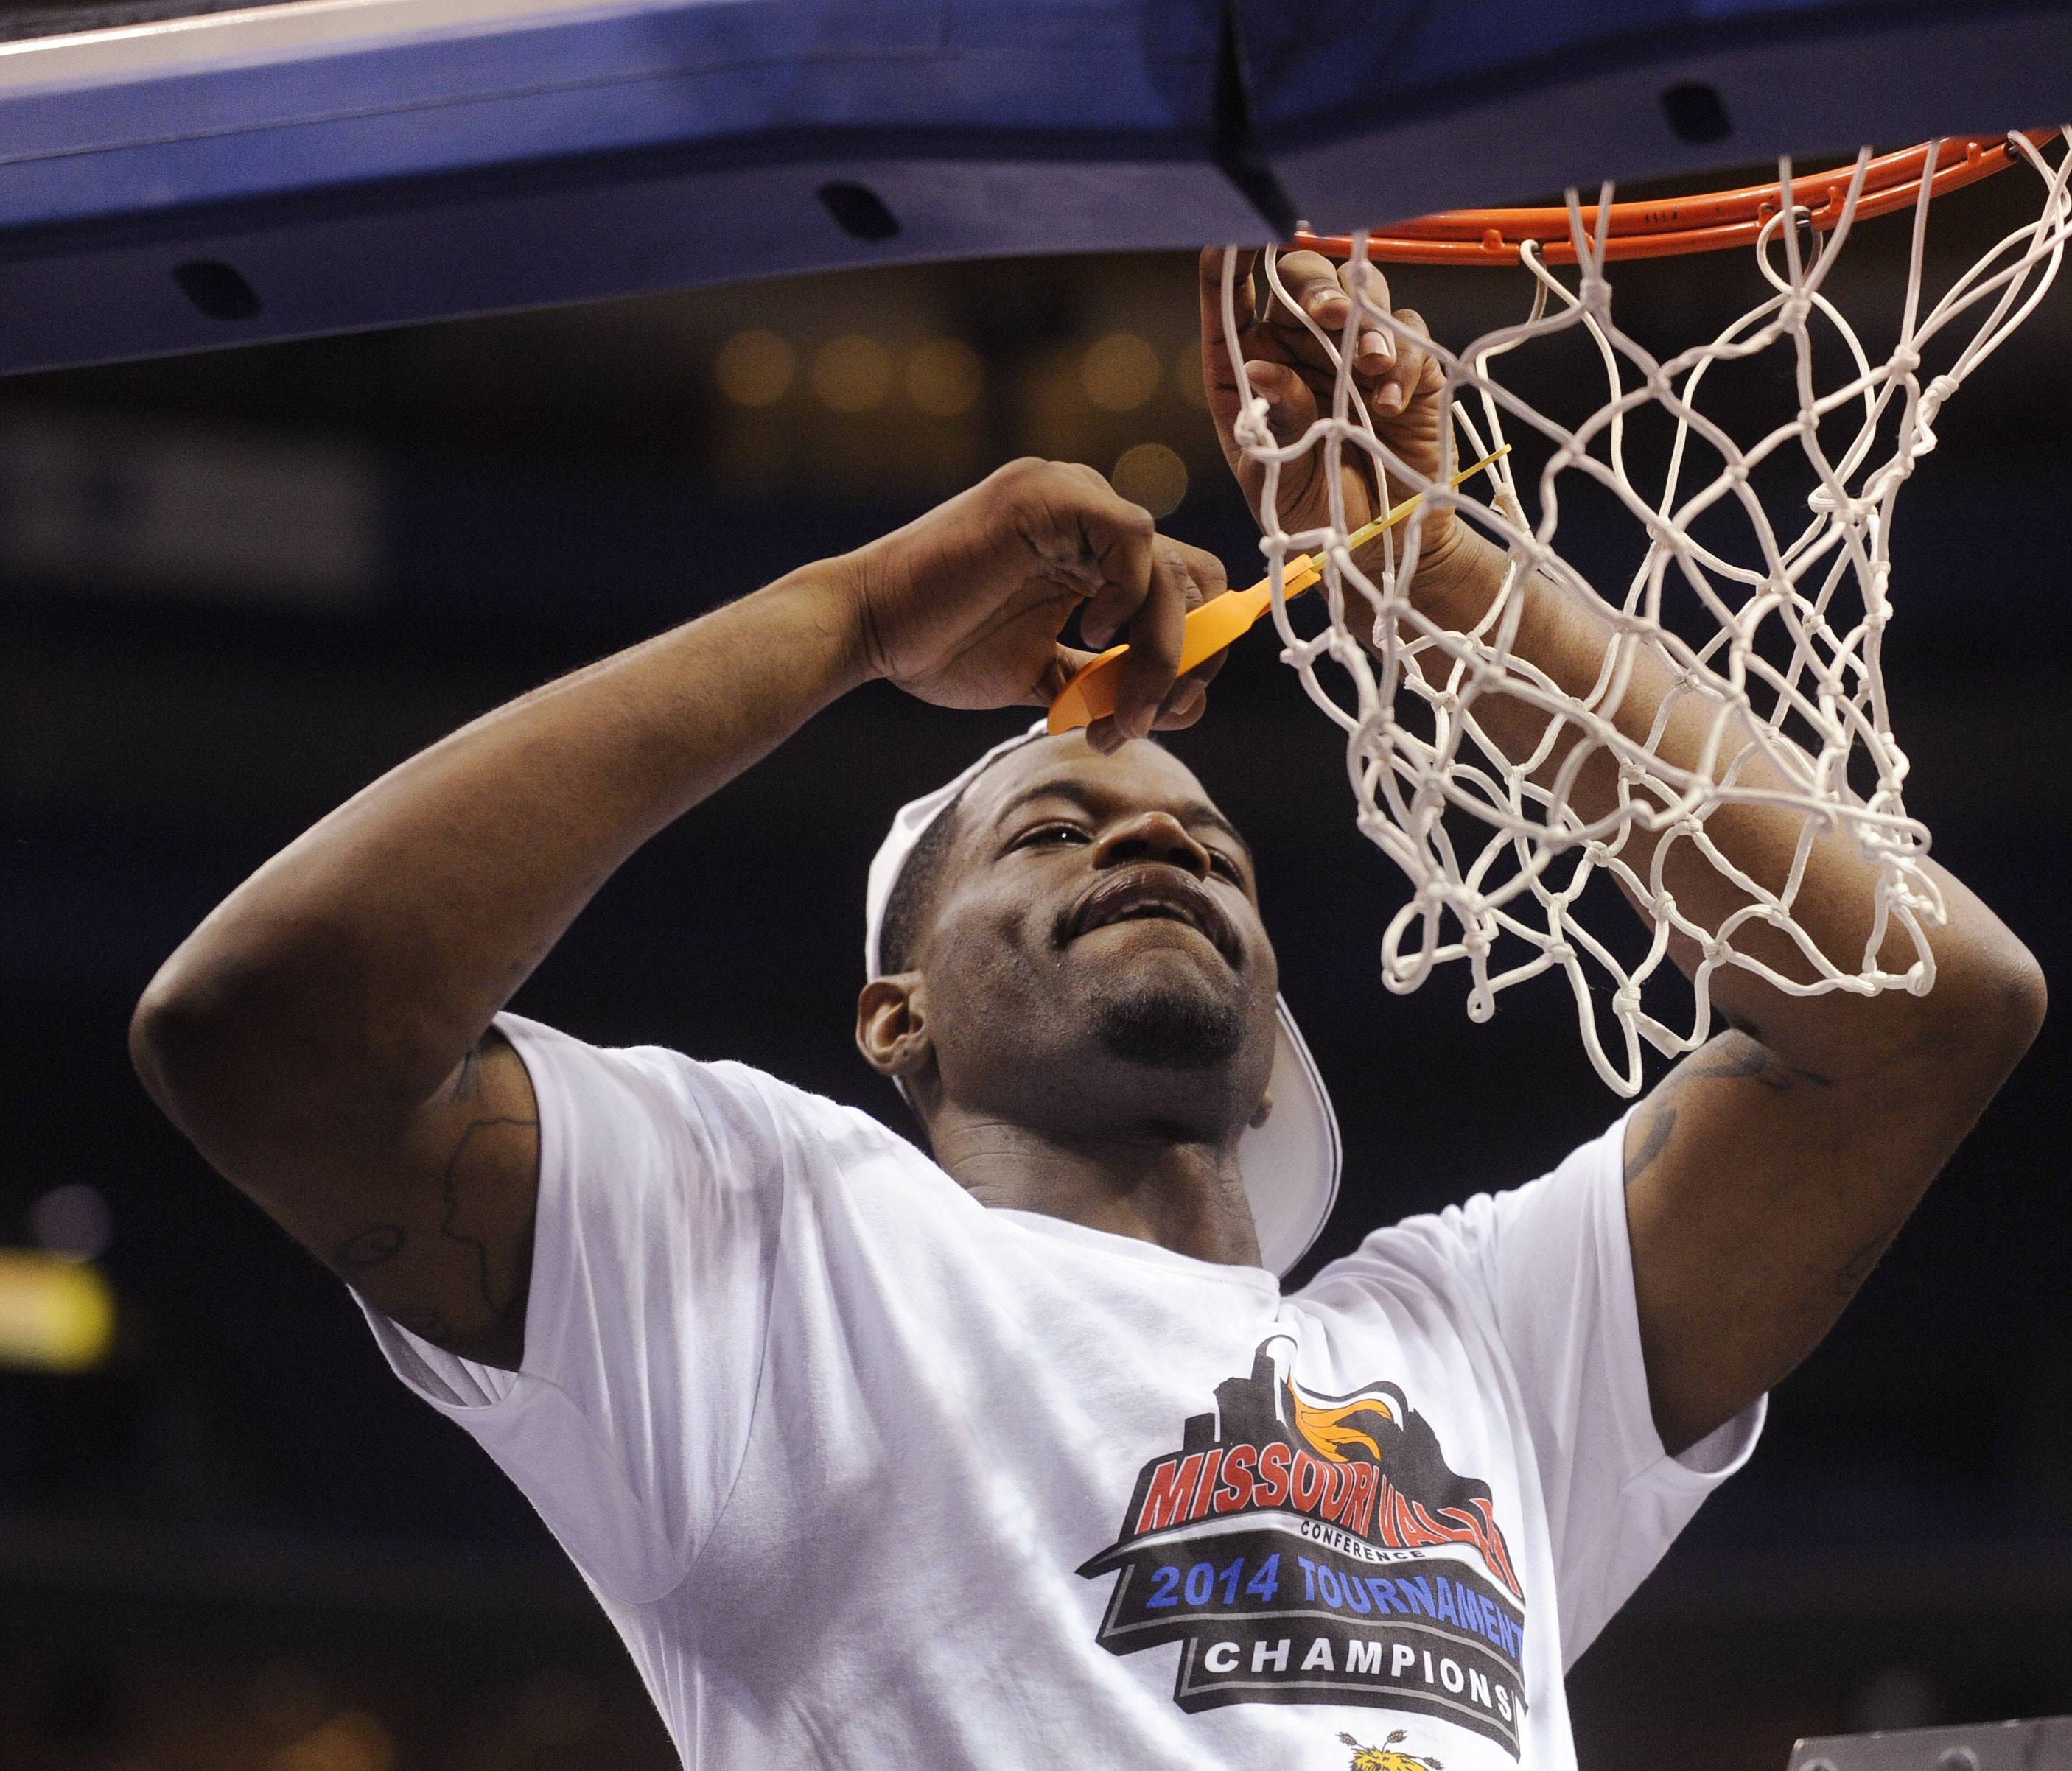 Wichita State's Chadrack Lufile cuts the net after Wichita's victory over Indiana State in an NCAA college basketball game in the championship of the Missouri Valley Conference men's tournament Sunday in St. Louis.